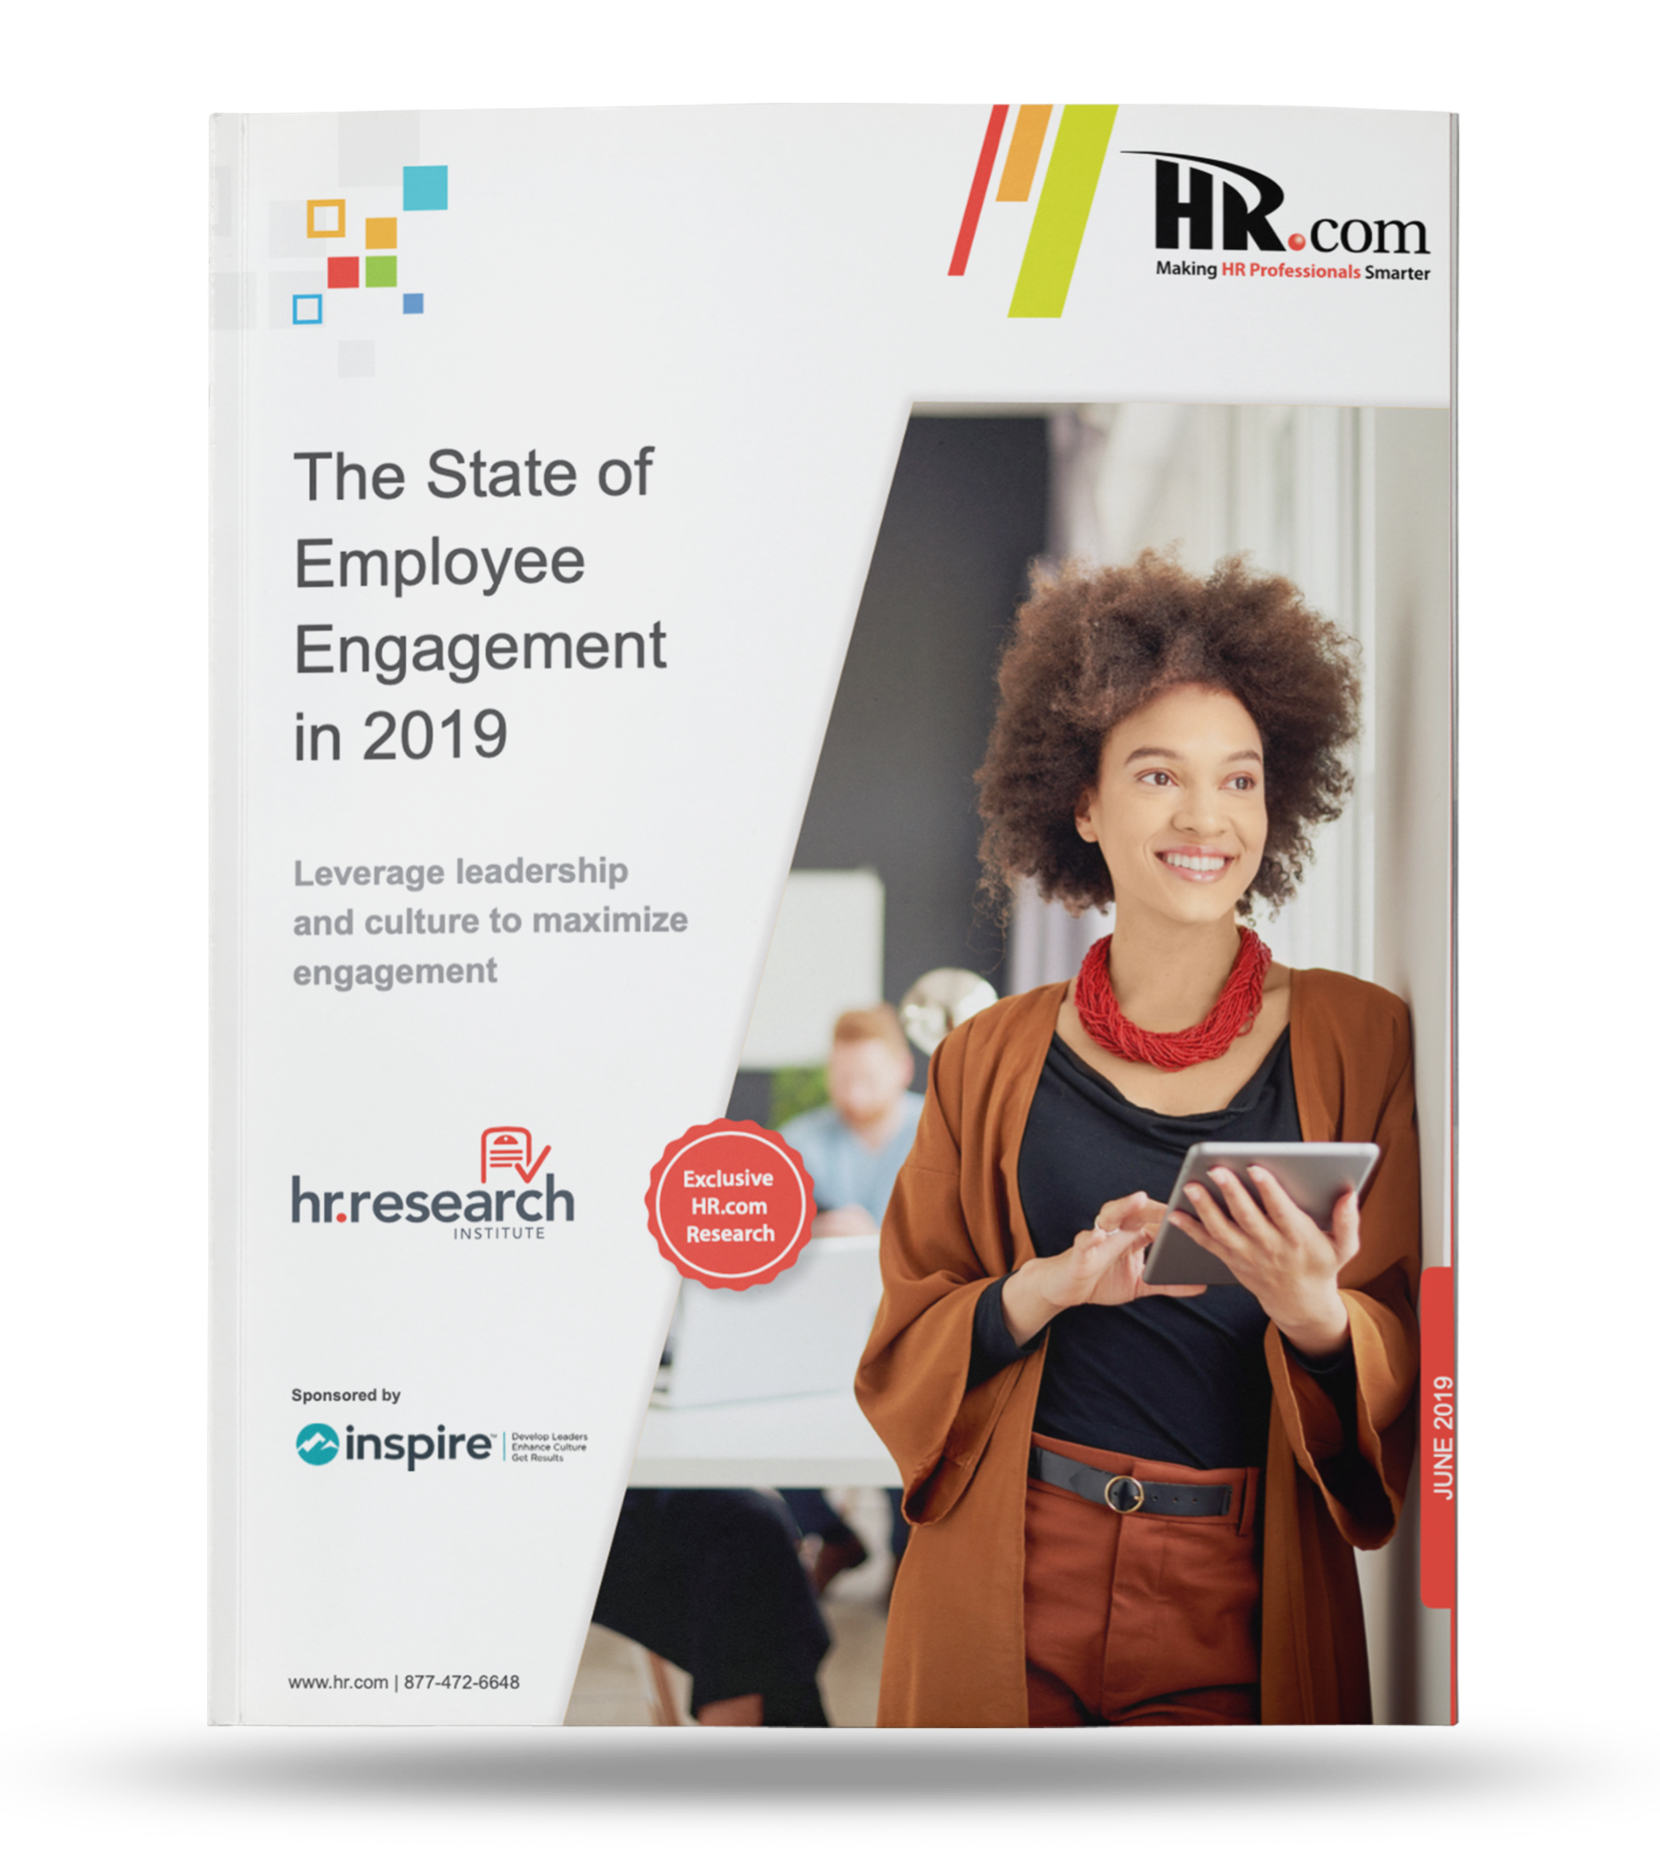 INSP-HR-State-of-Employee-Engagement-2019-Mockup